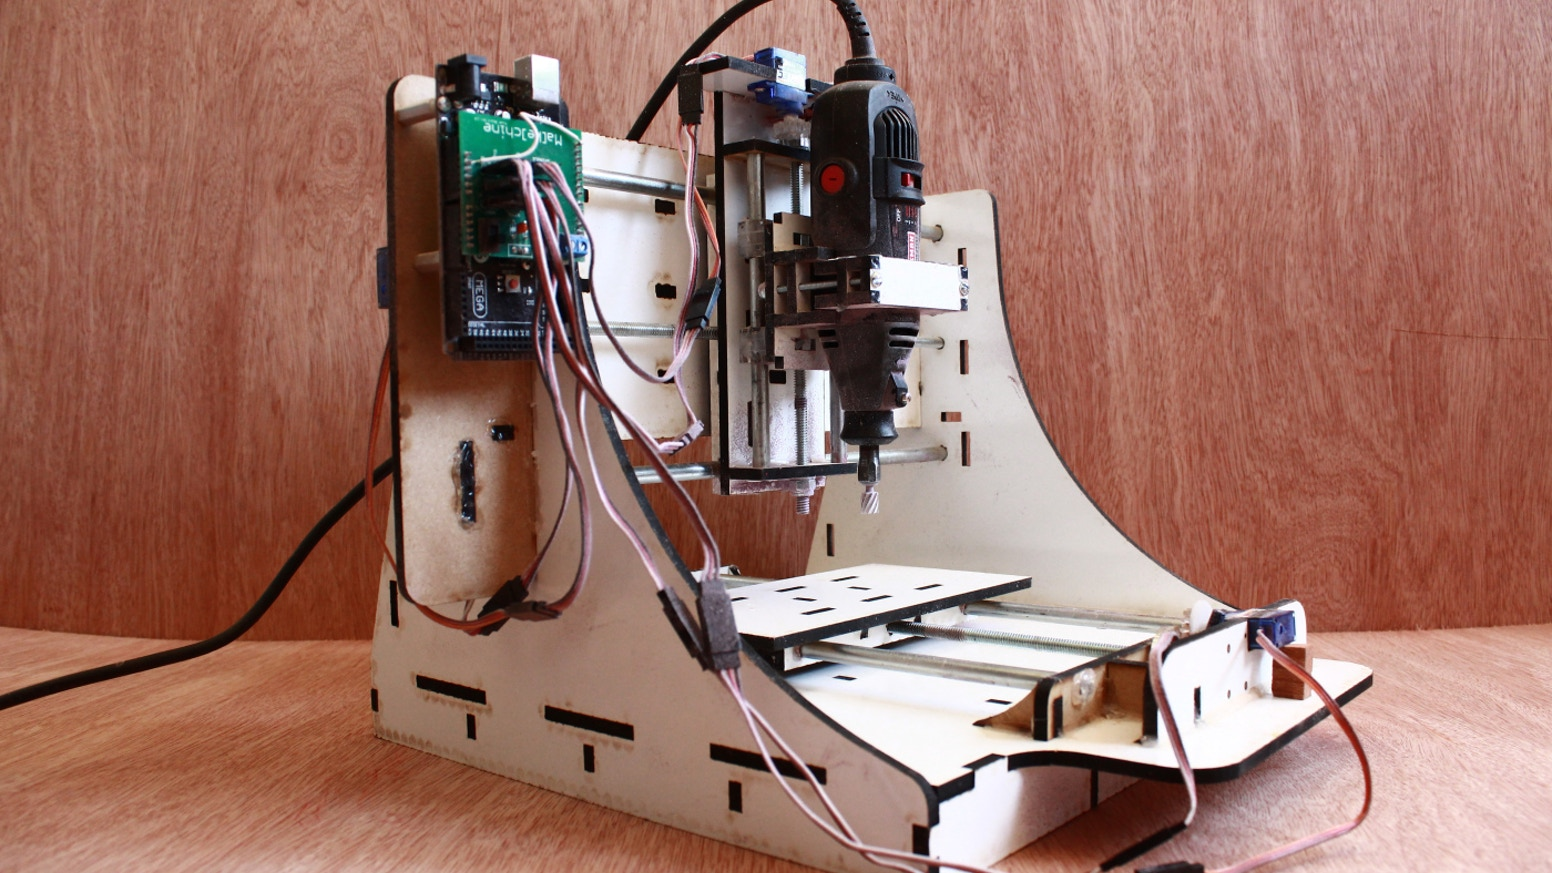 Makesmith Cnc The Most Affordable Desktop Cnc Router By Bar Smith